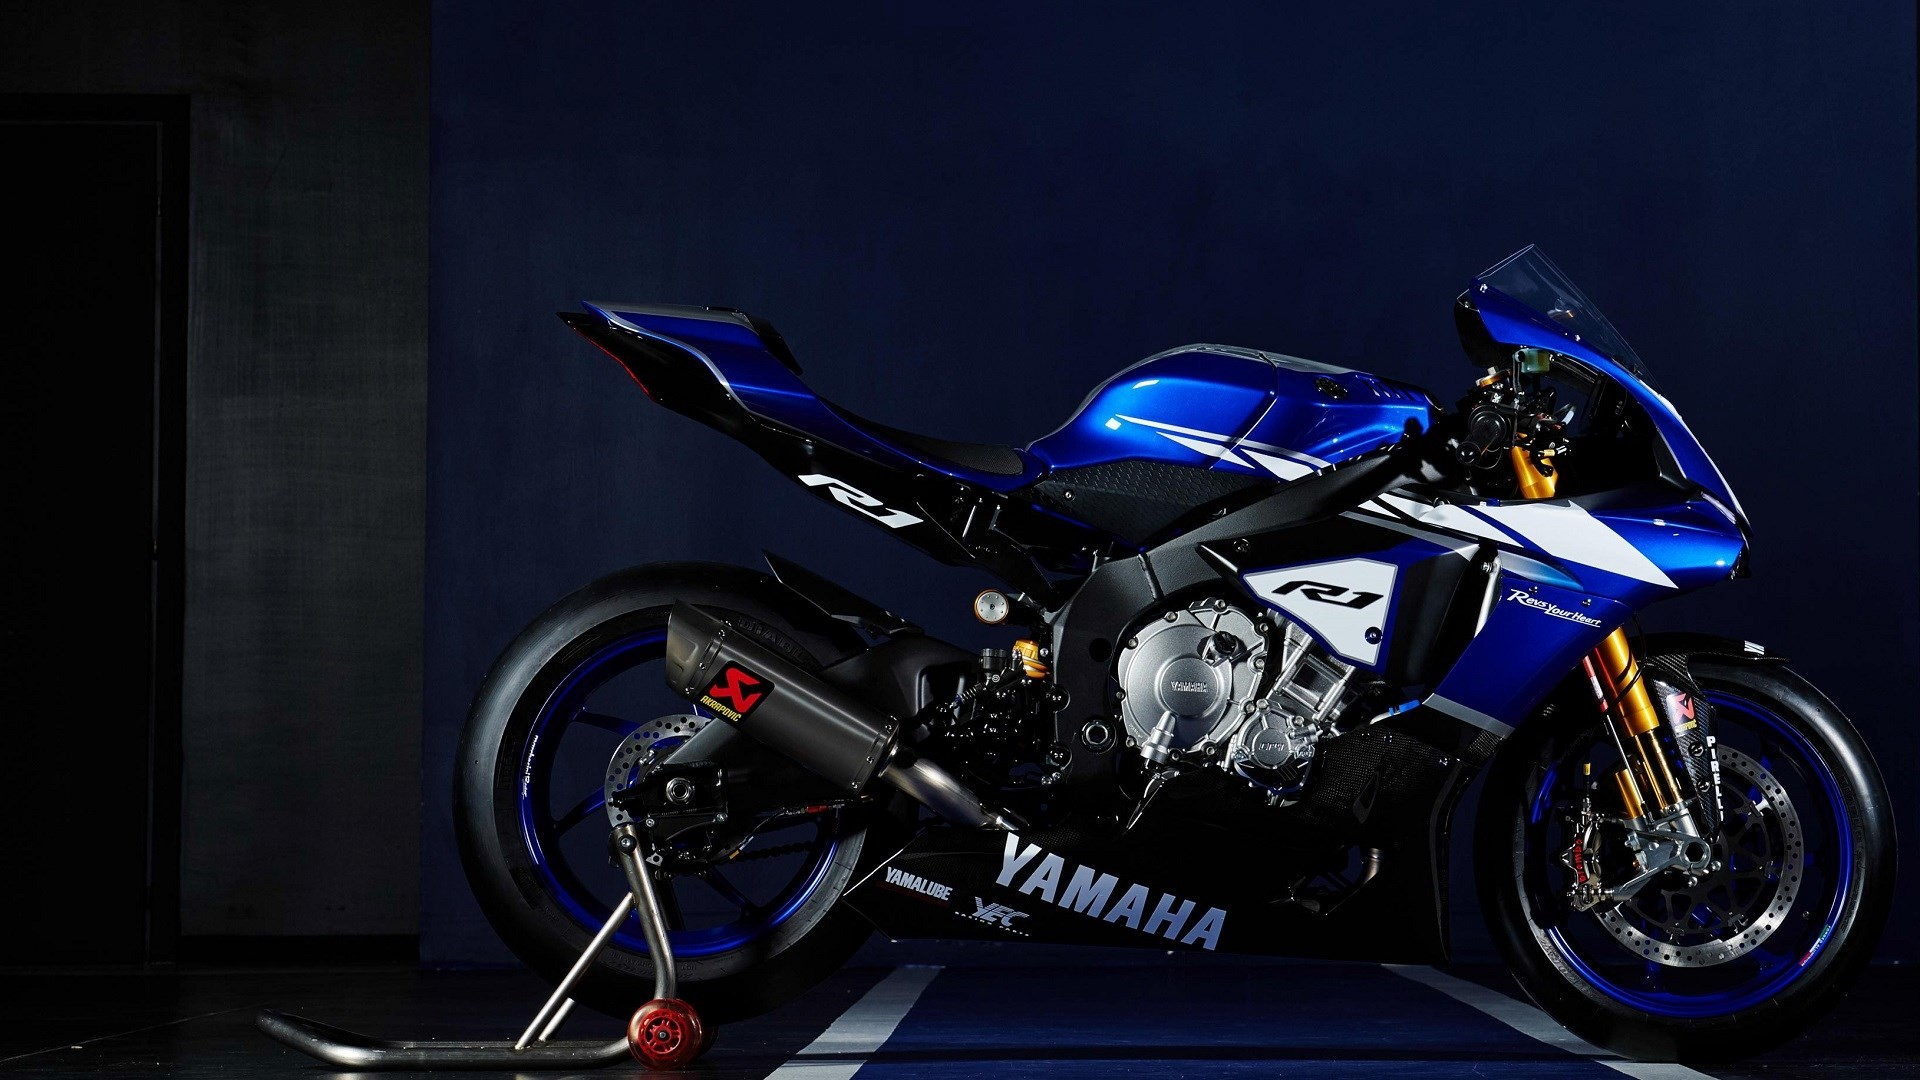 Yamaha r1 wallpaper 72 images for Fond ecran r6